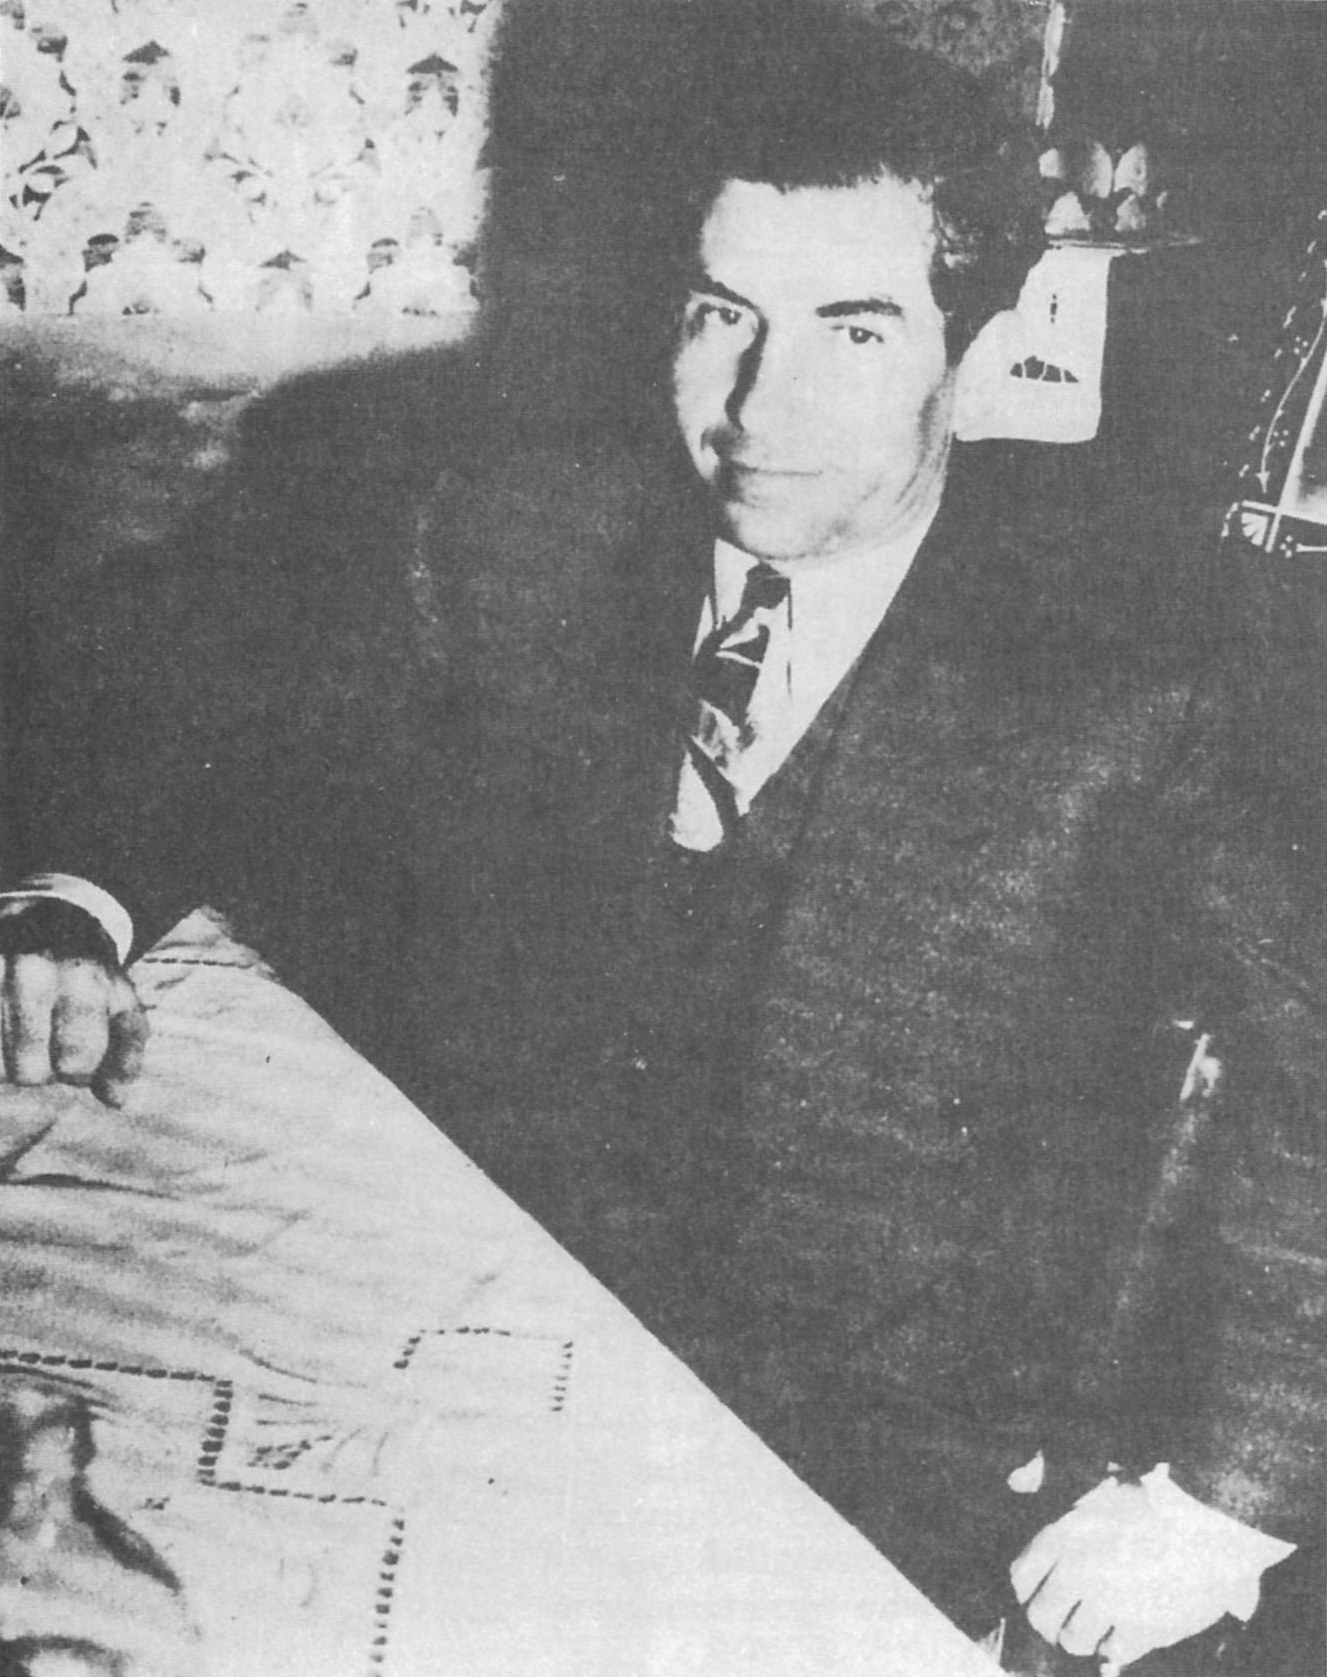 Charles Luciano